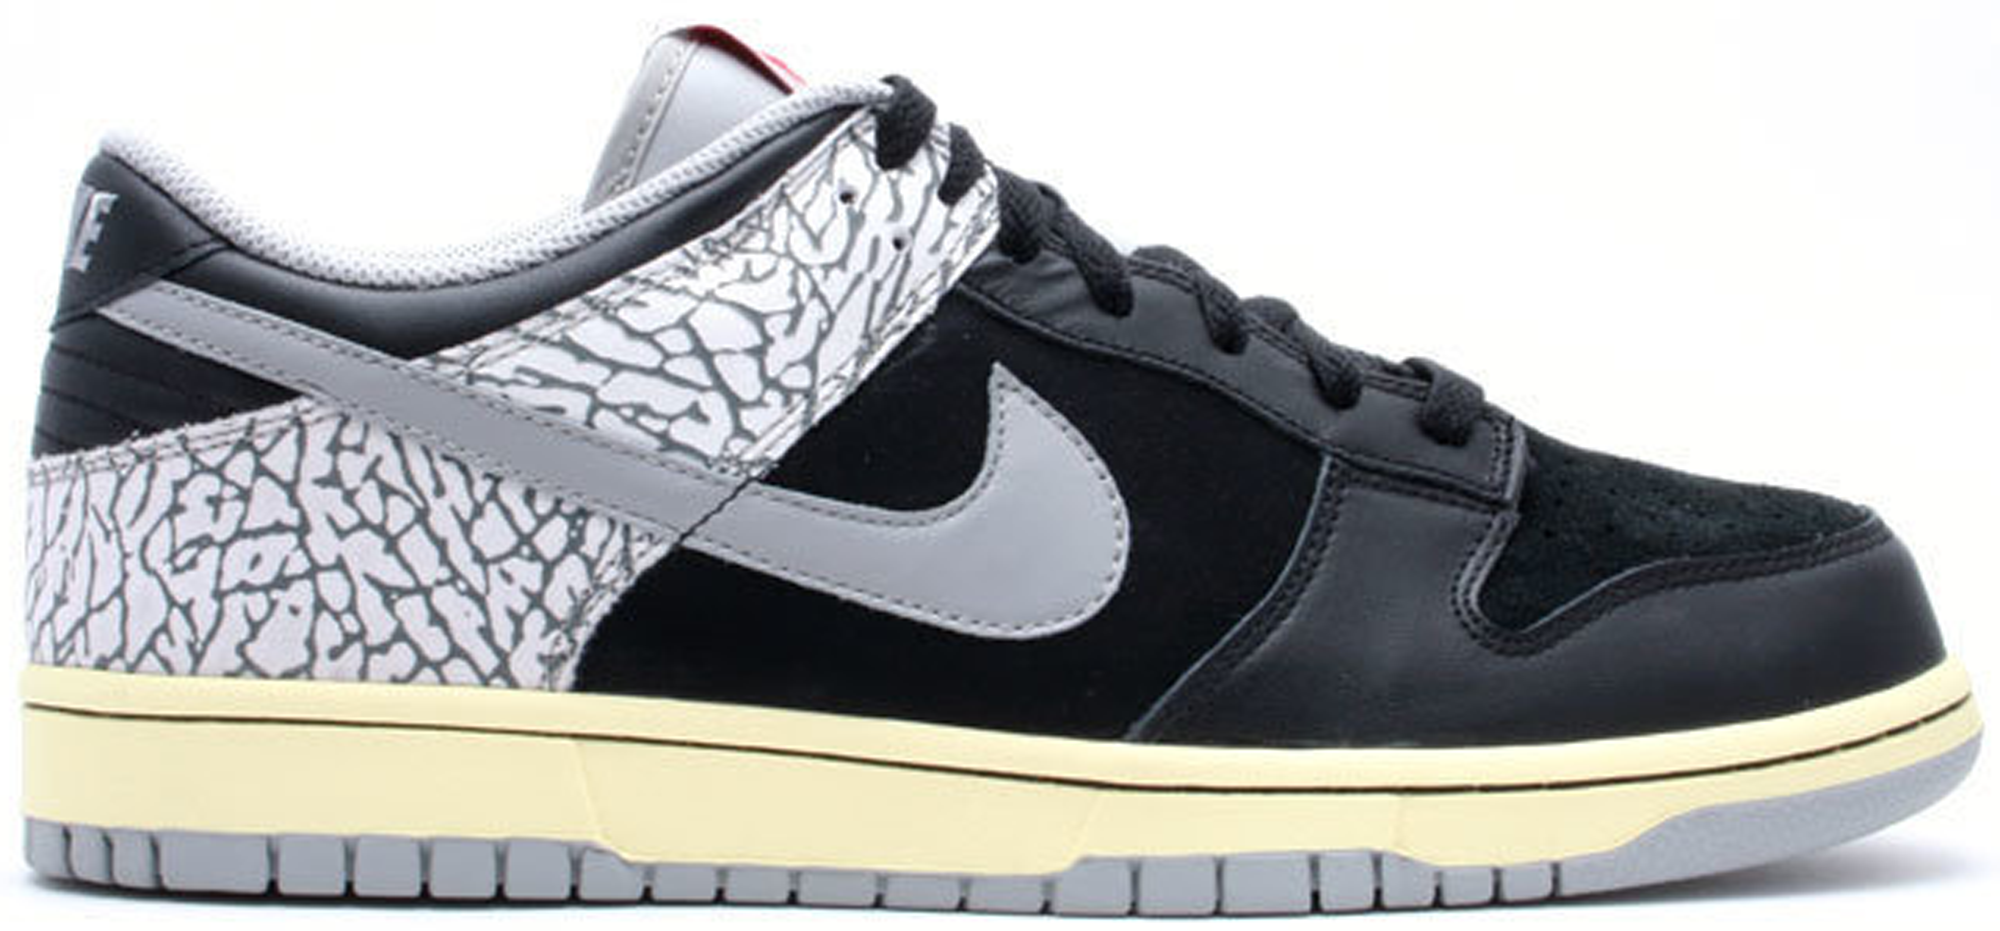 Nike Dunk Low J-Pack Black Cement (2009